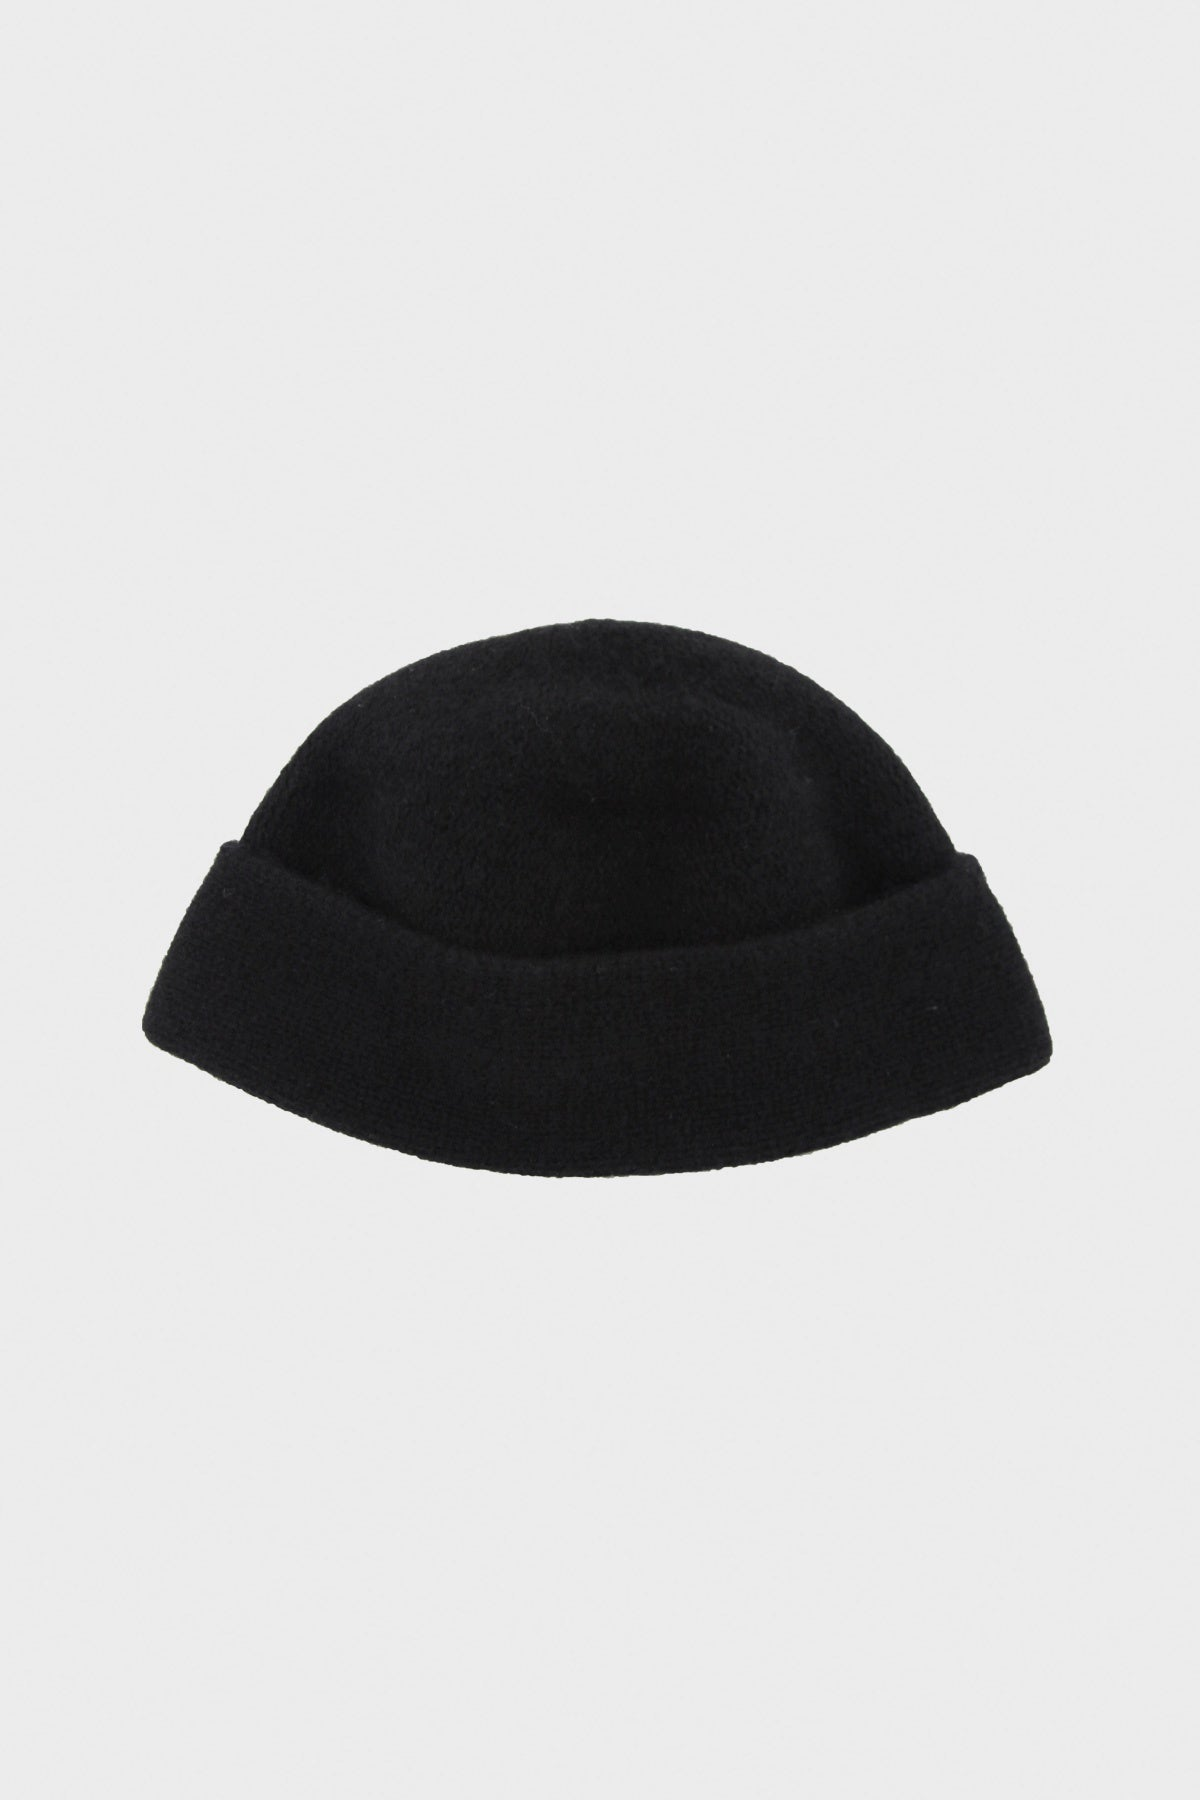 Cableami - Cashmere Beanie - Black - Canoe Club